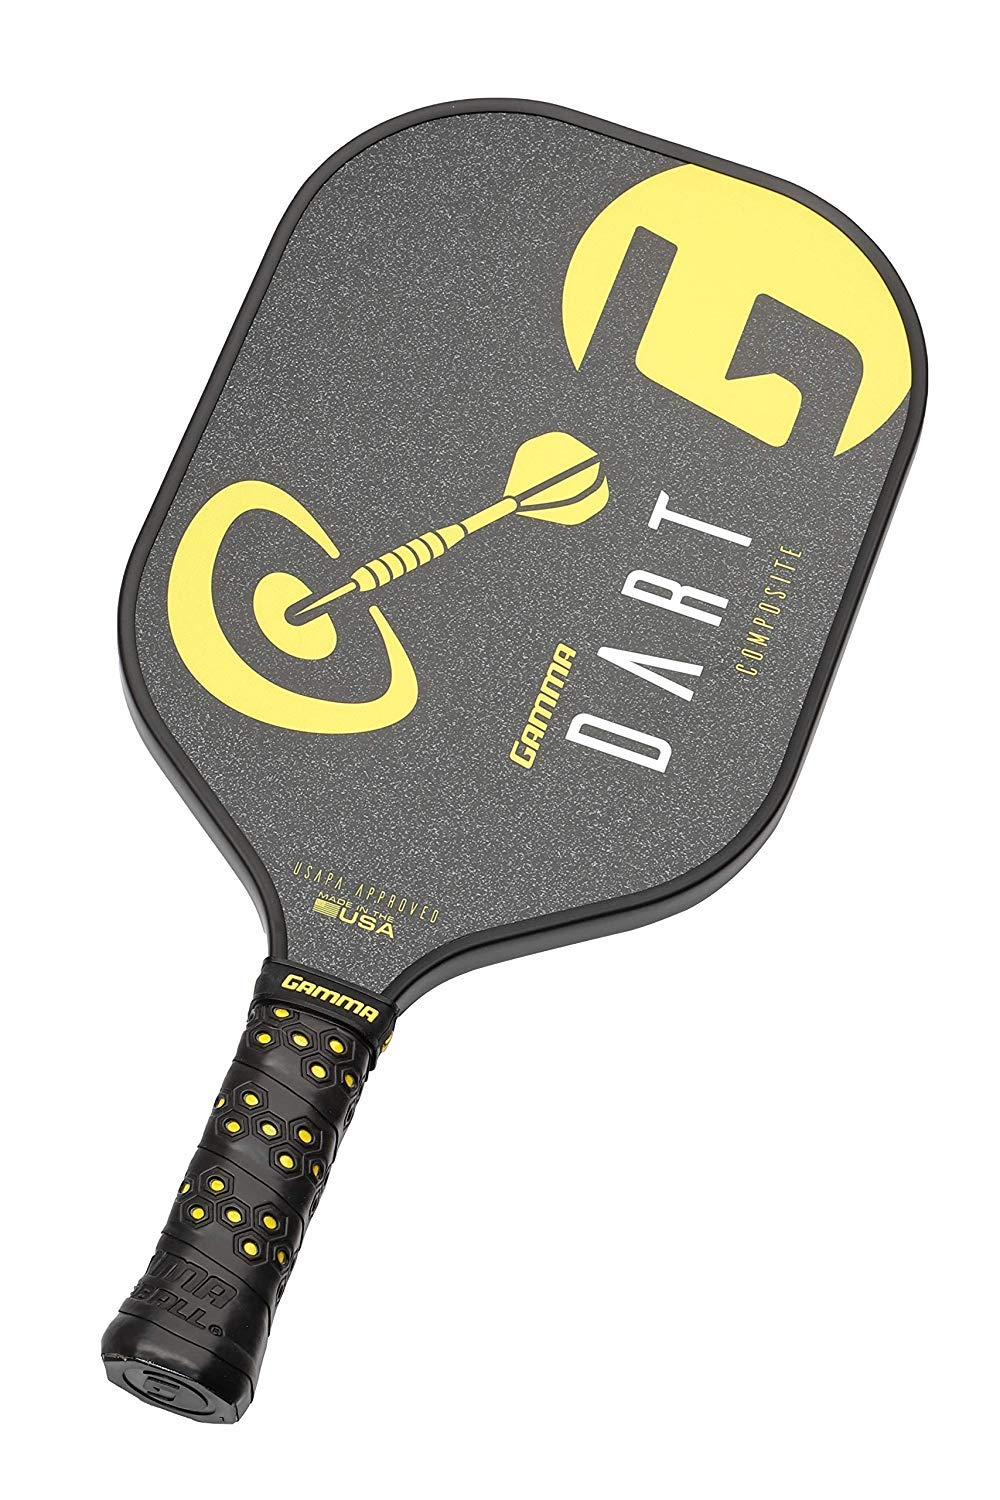 Amazon.com : Gamma Dart Composite Pickleball Paddle: Pickle Ball Paddles for Indoor & Outdoor Play - USAPA Approved Racquet for Adults & Kids - Black/Yellow ...